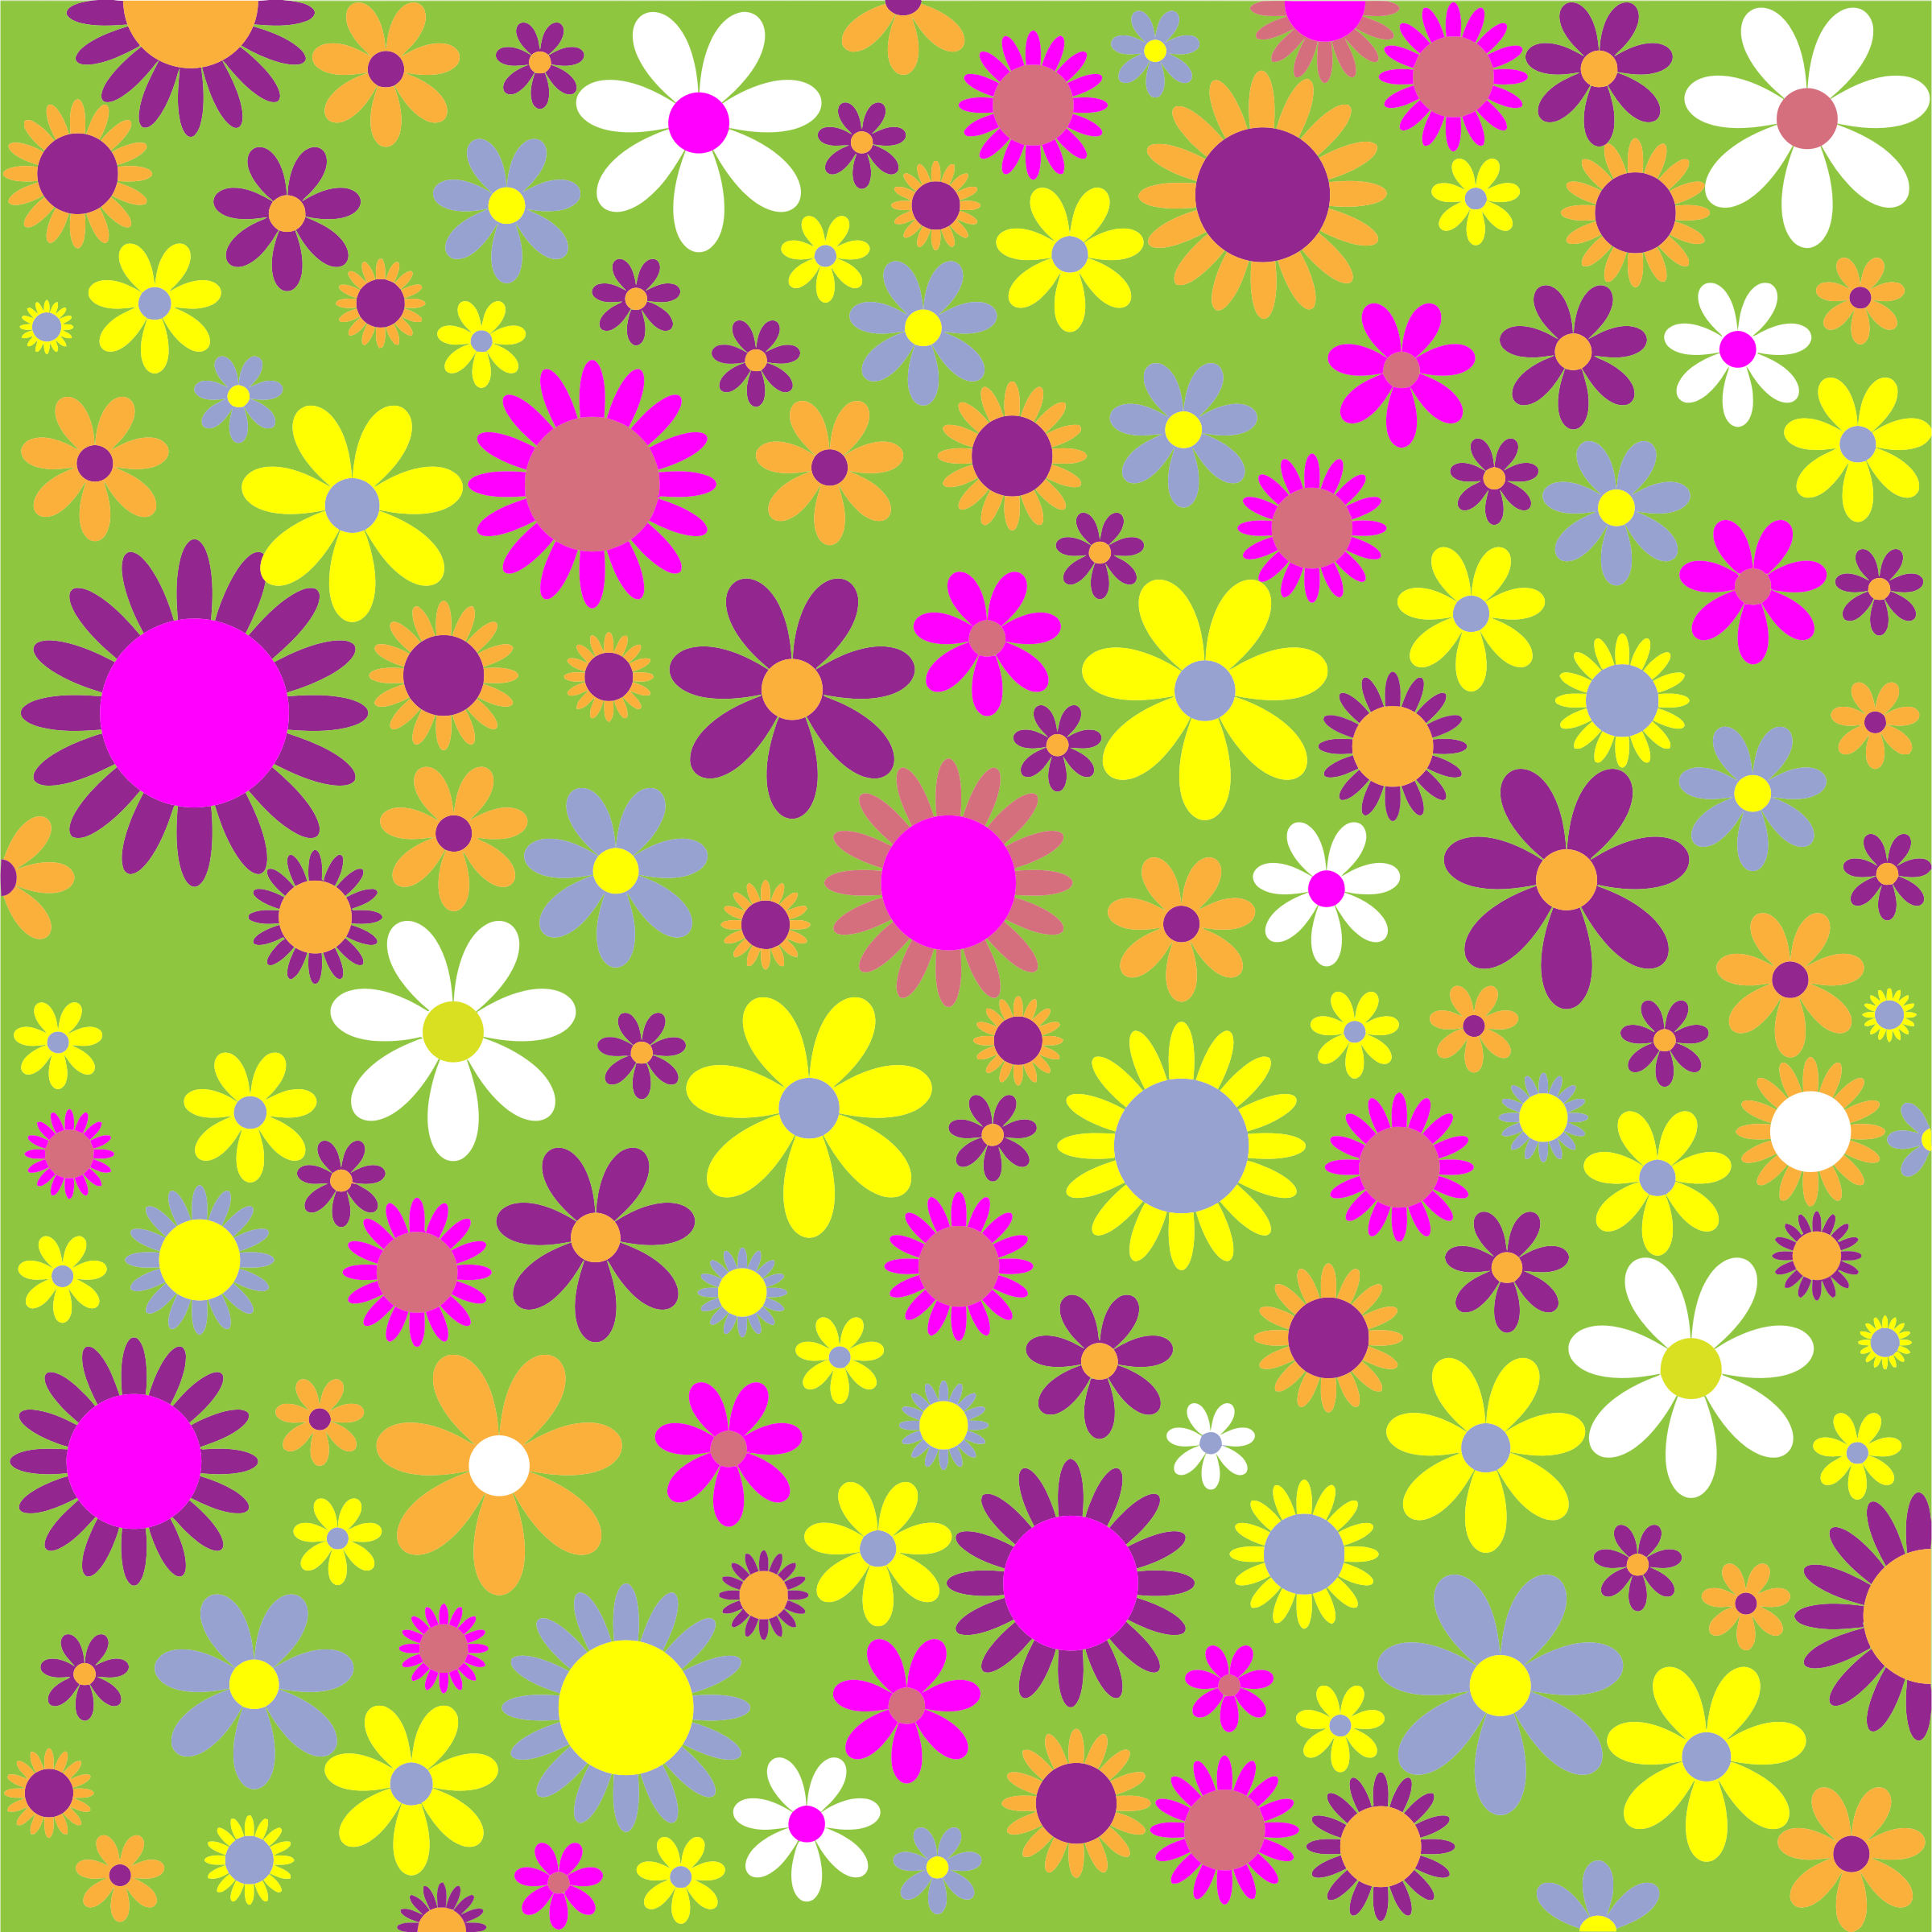 colorful floral background patterns - photo #1